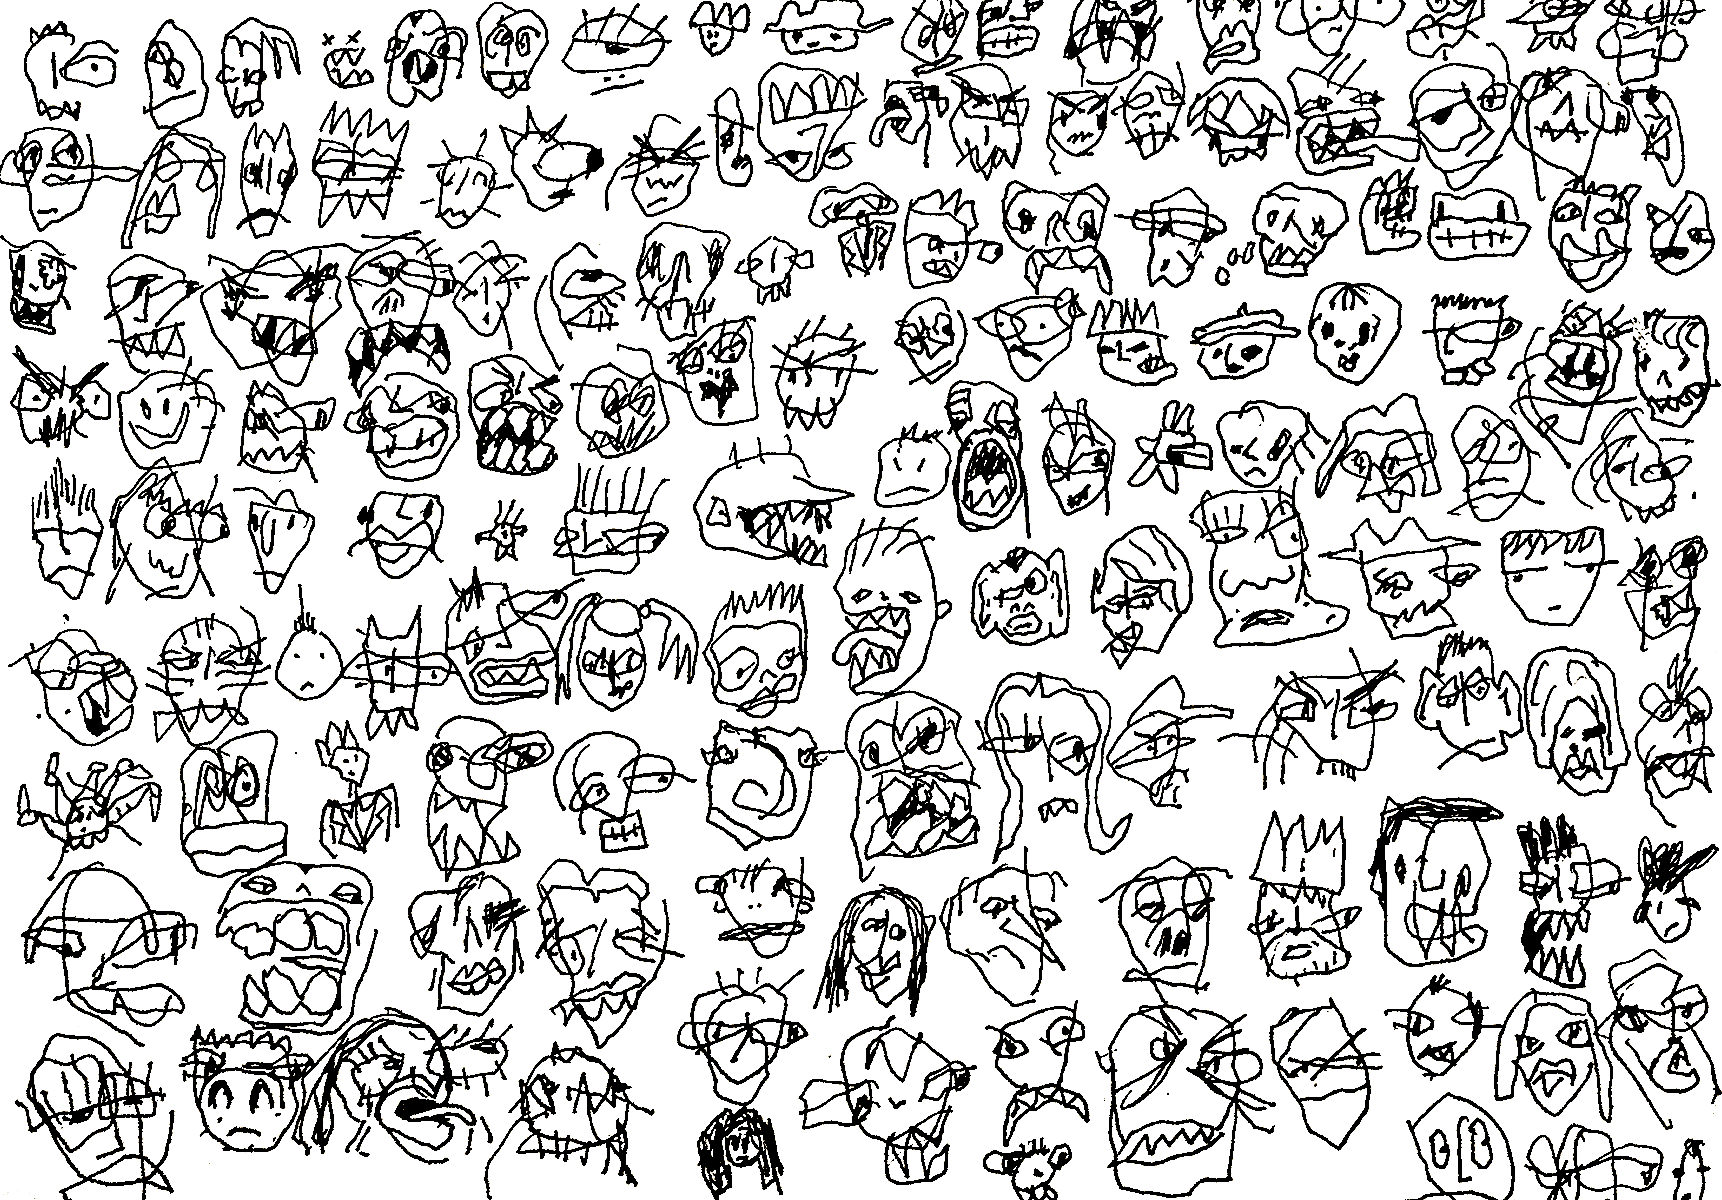 [Faces #11, Minnesota Collection]